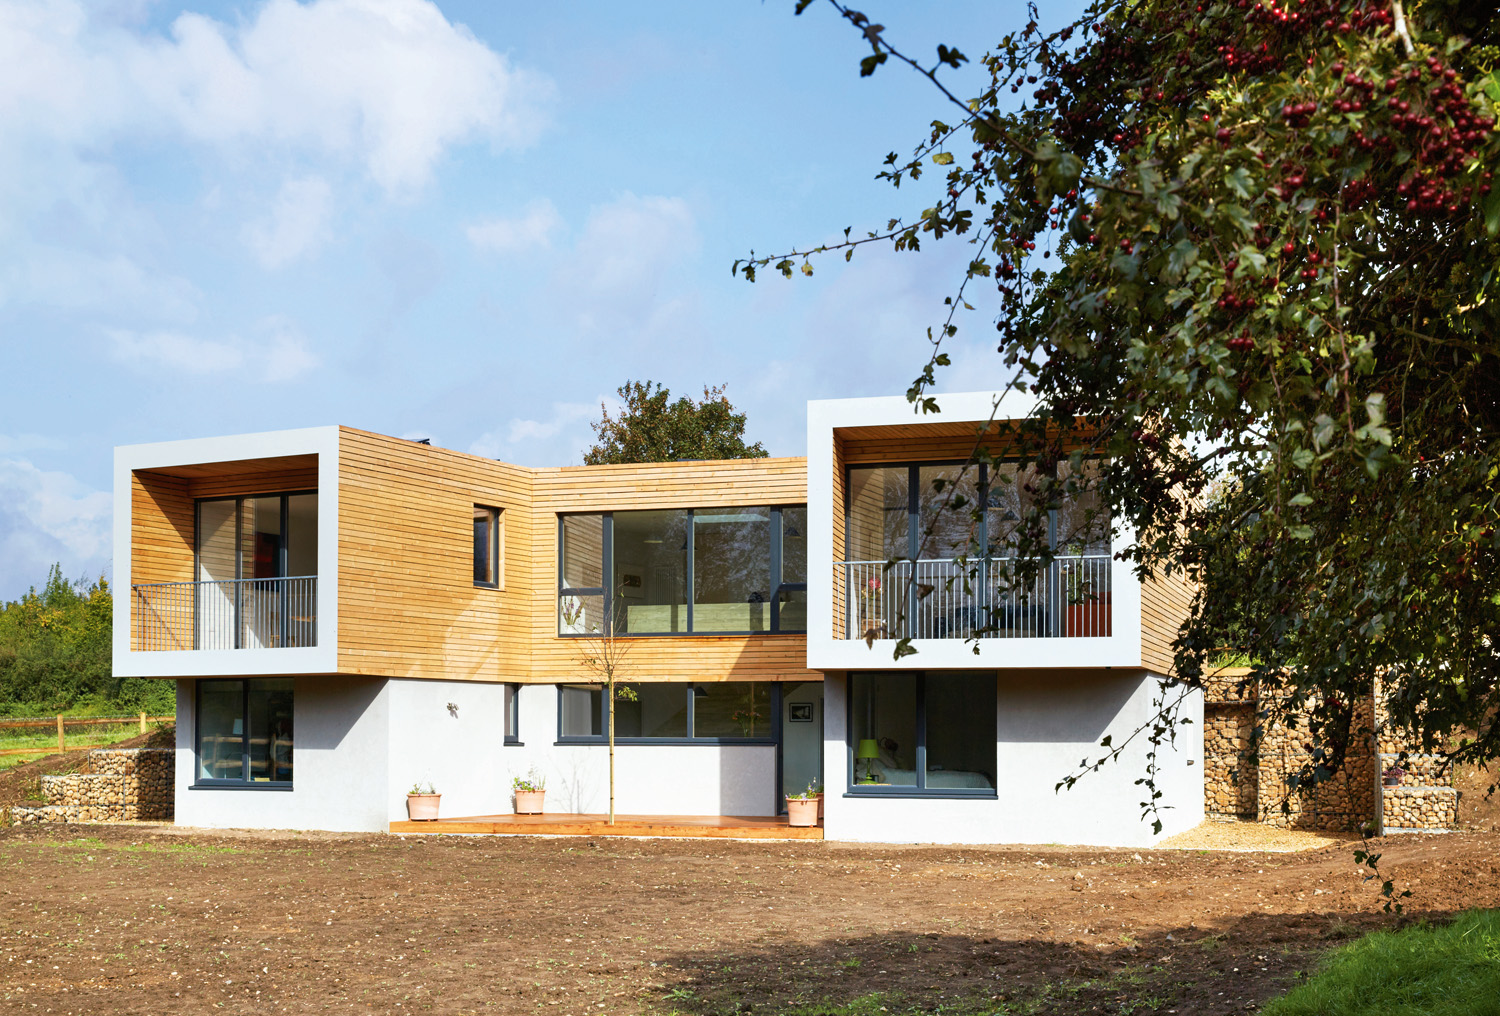 Grand designs uk idyllic and super eco home completehome - Building a new home ideas ...